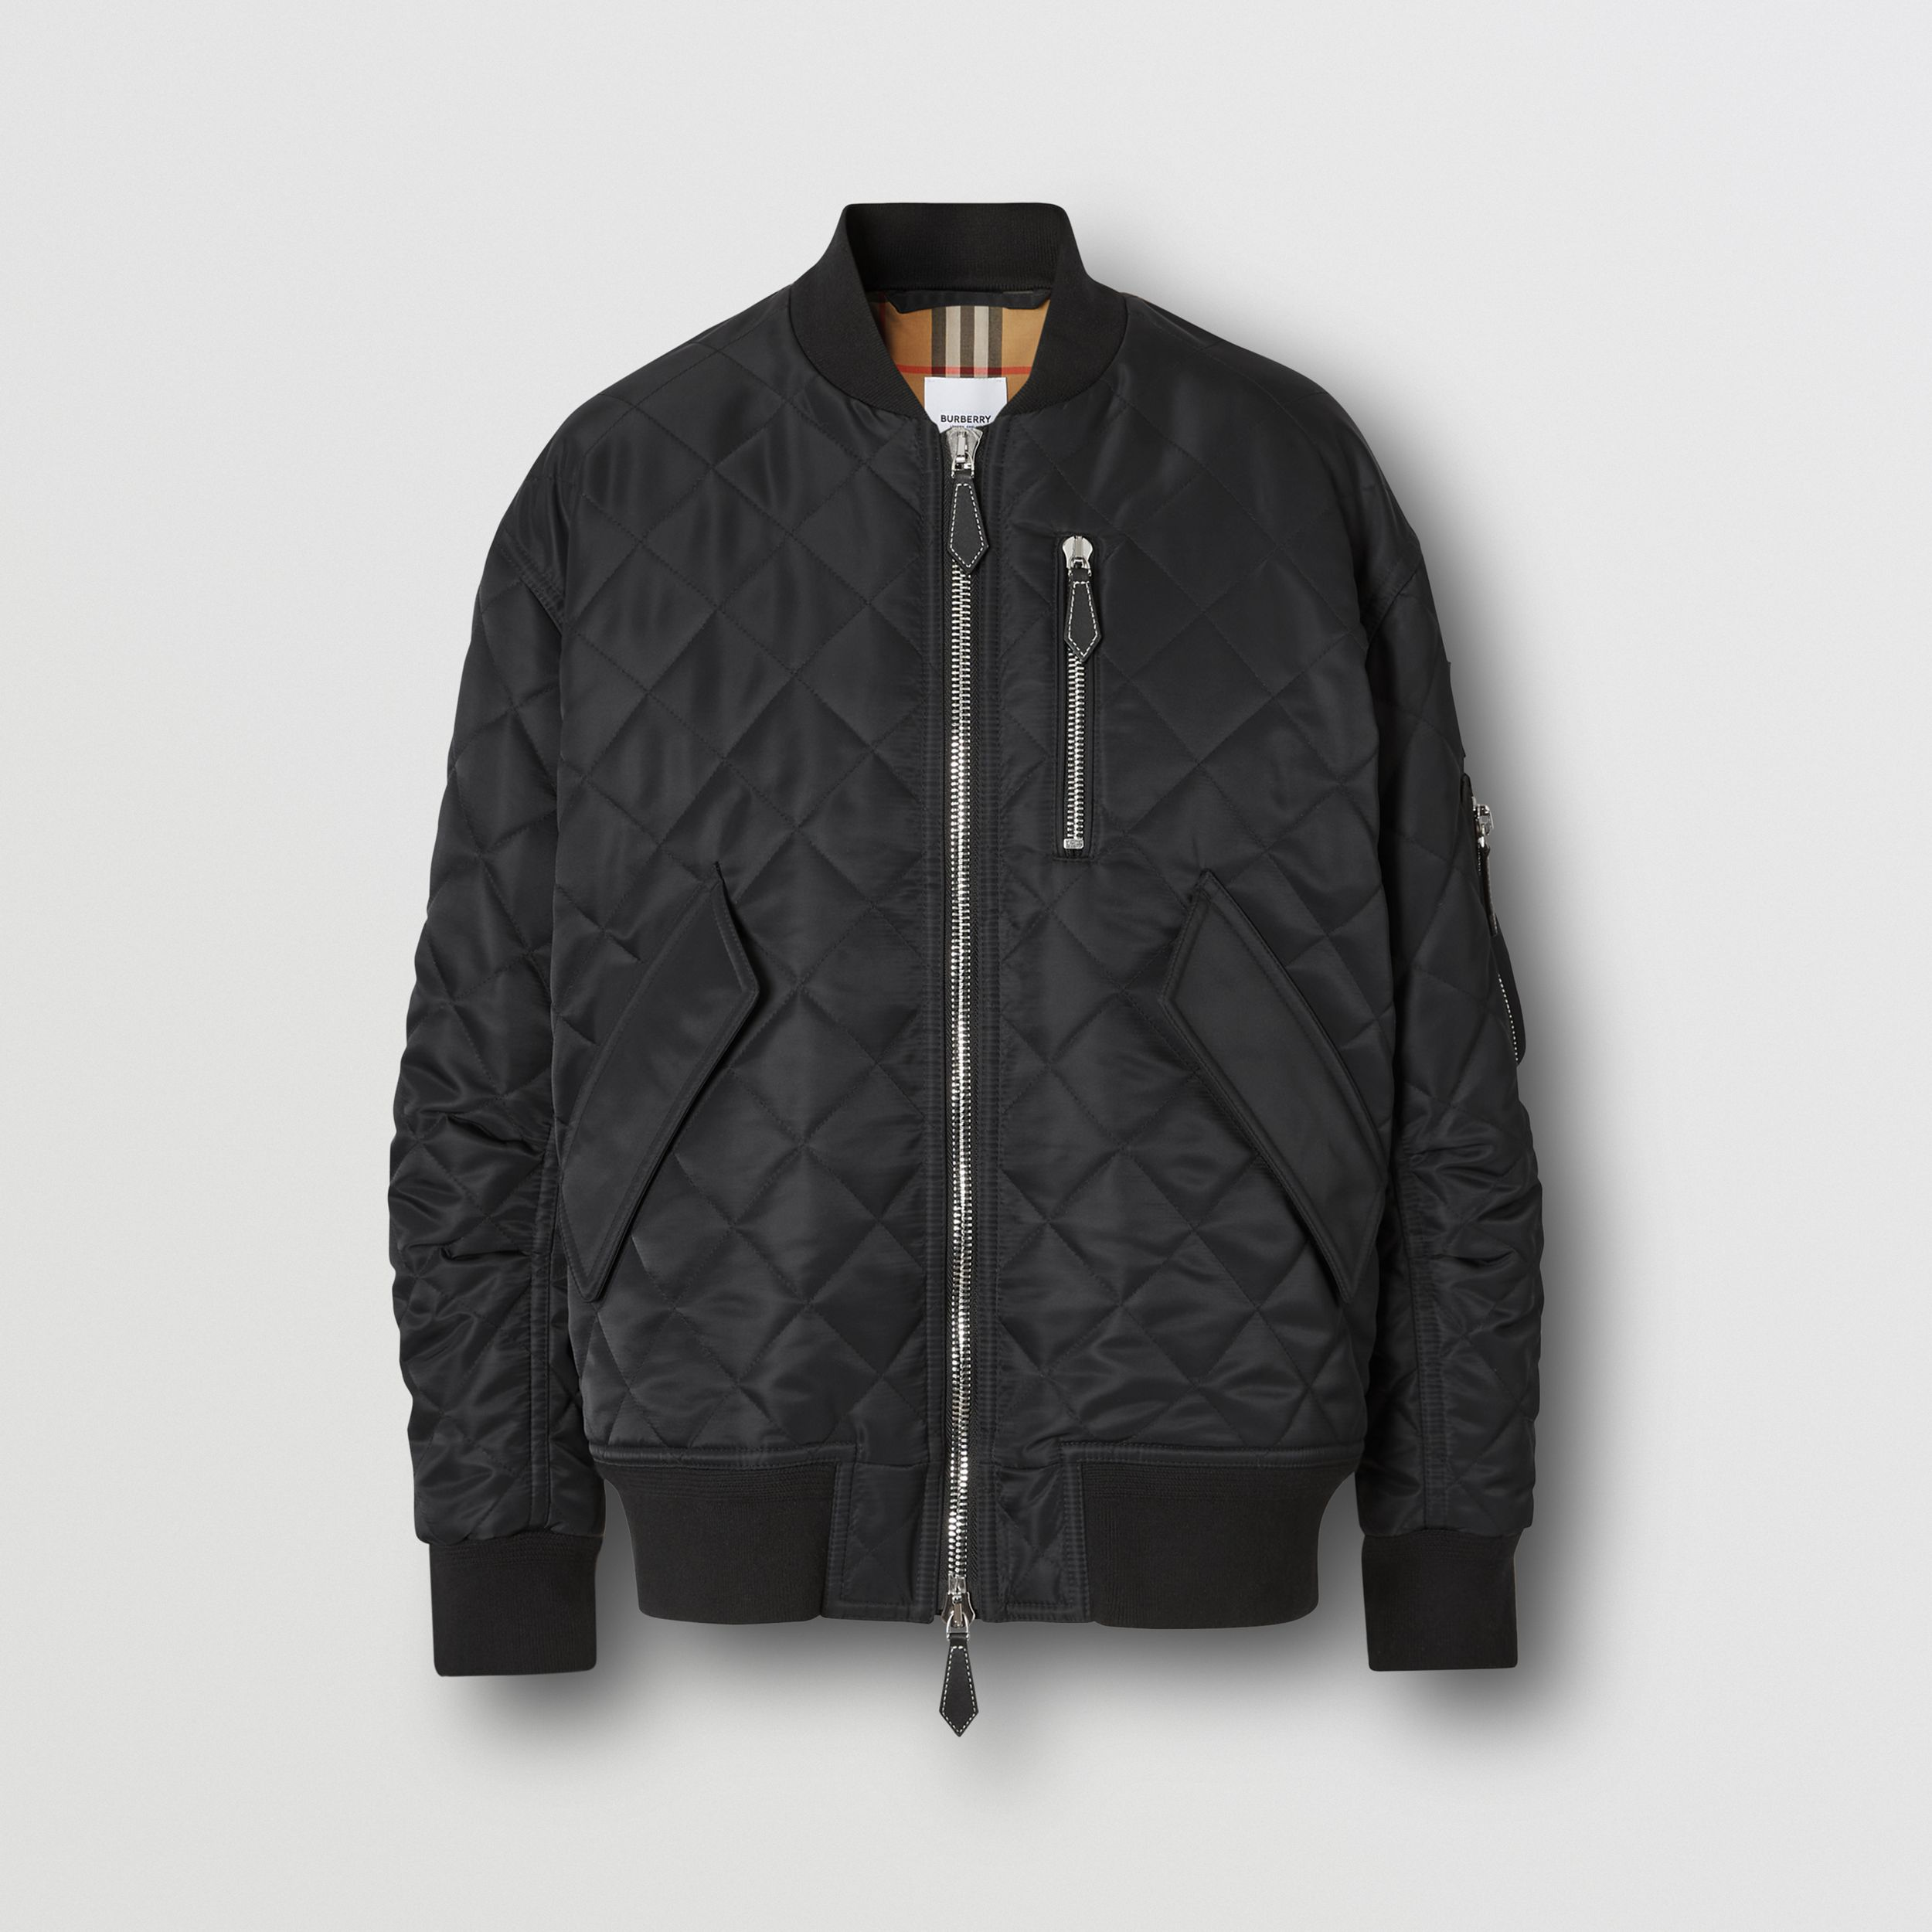 Diamond Quilted Nylon and Cotton Bomber Jacket in Black | Burberry Hong Kong S.A.R. - 4